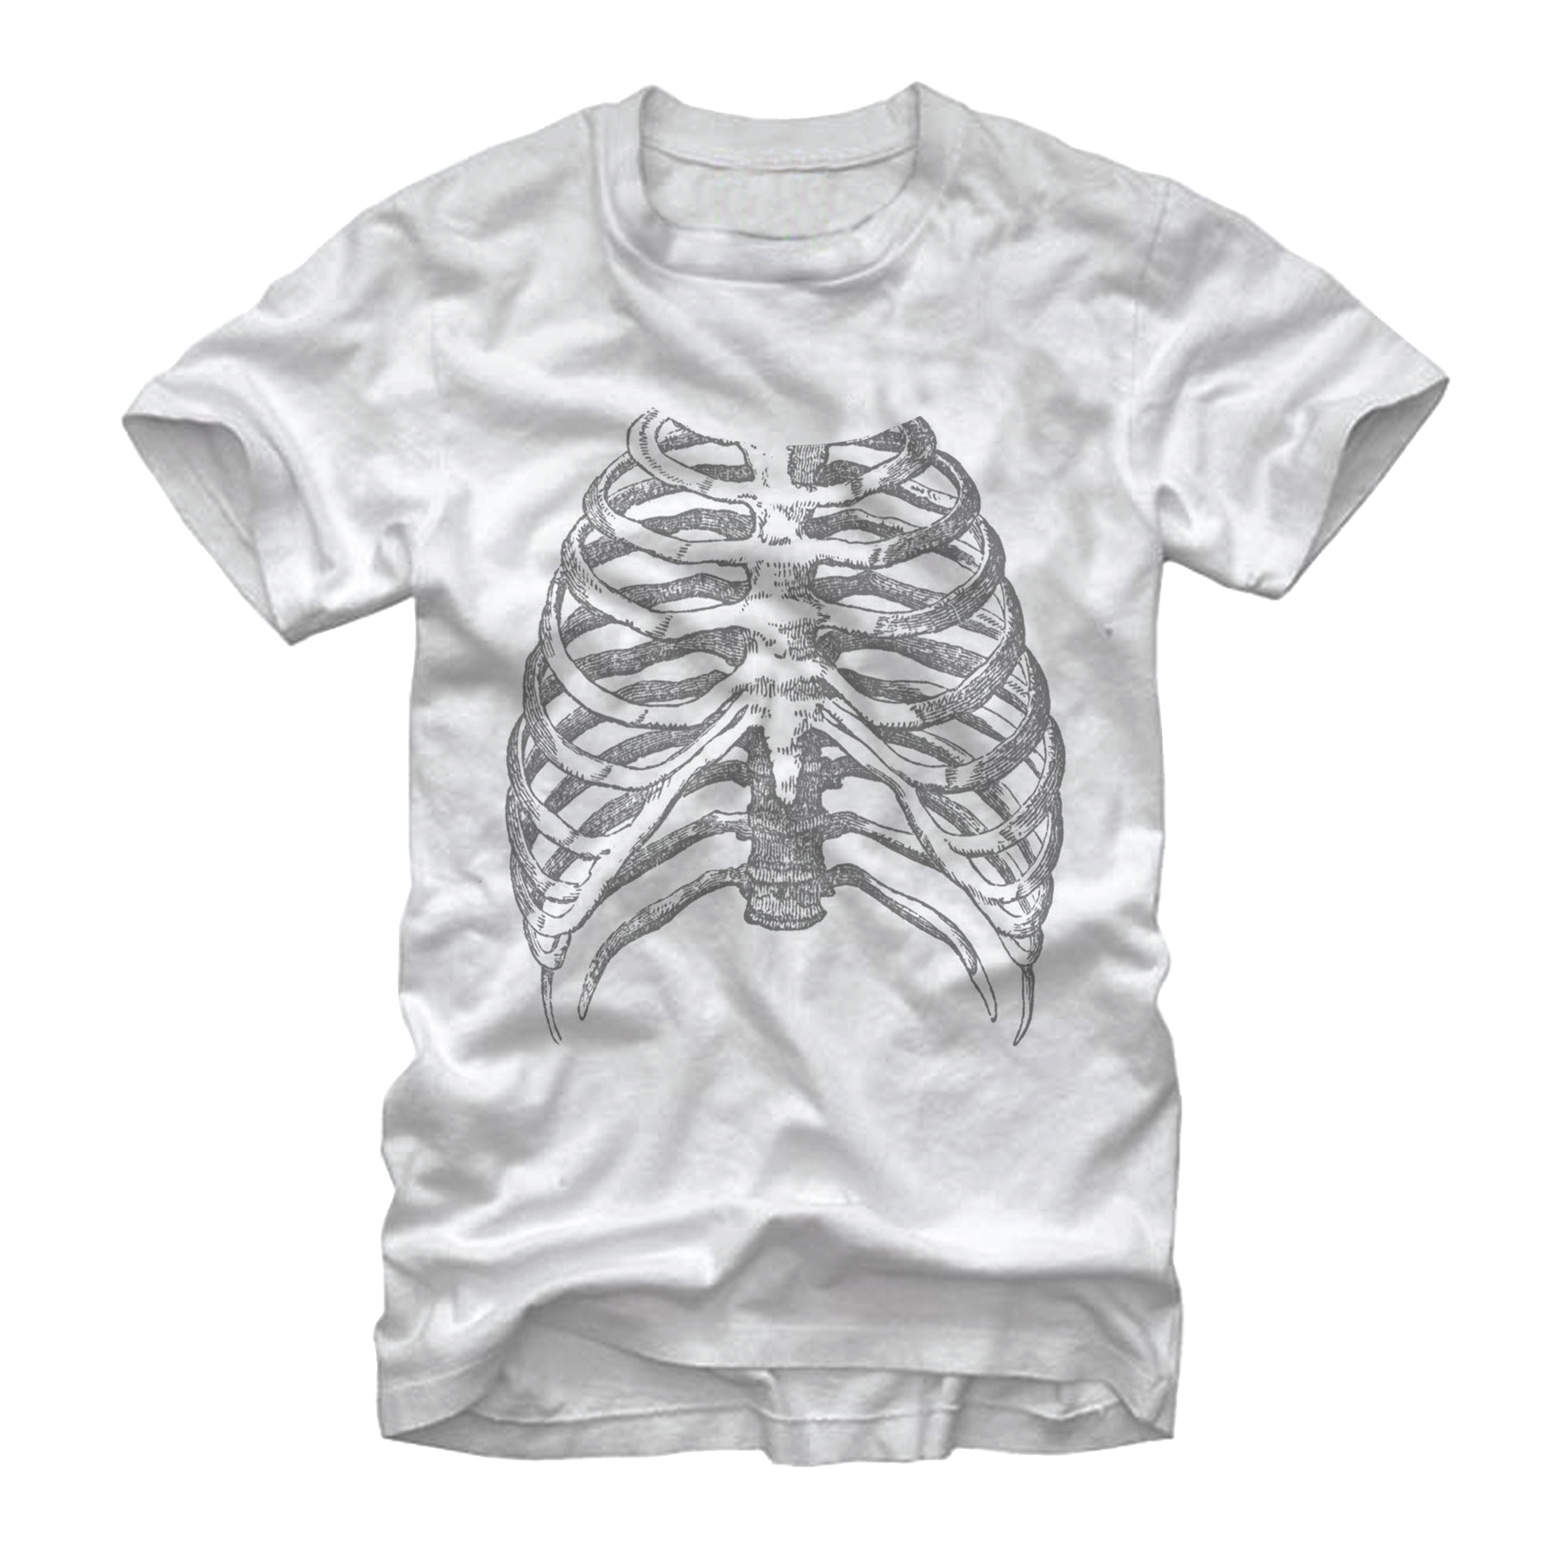 Lost Gods Rib Cage Mens Graphic T Shirt